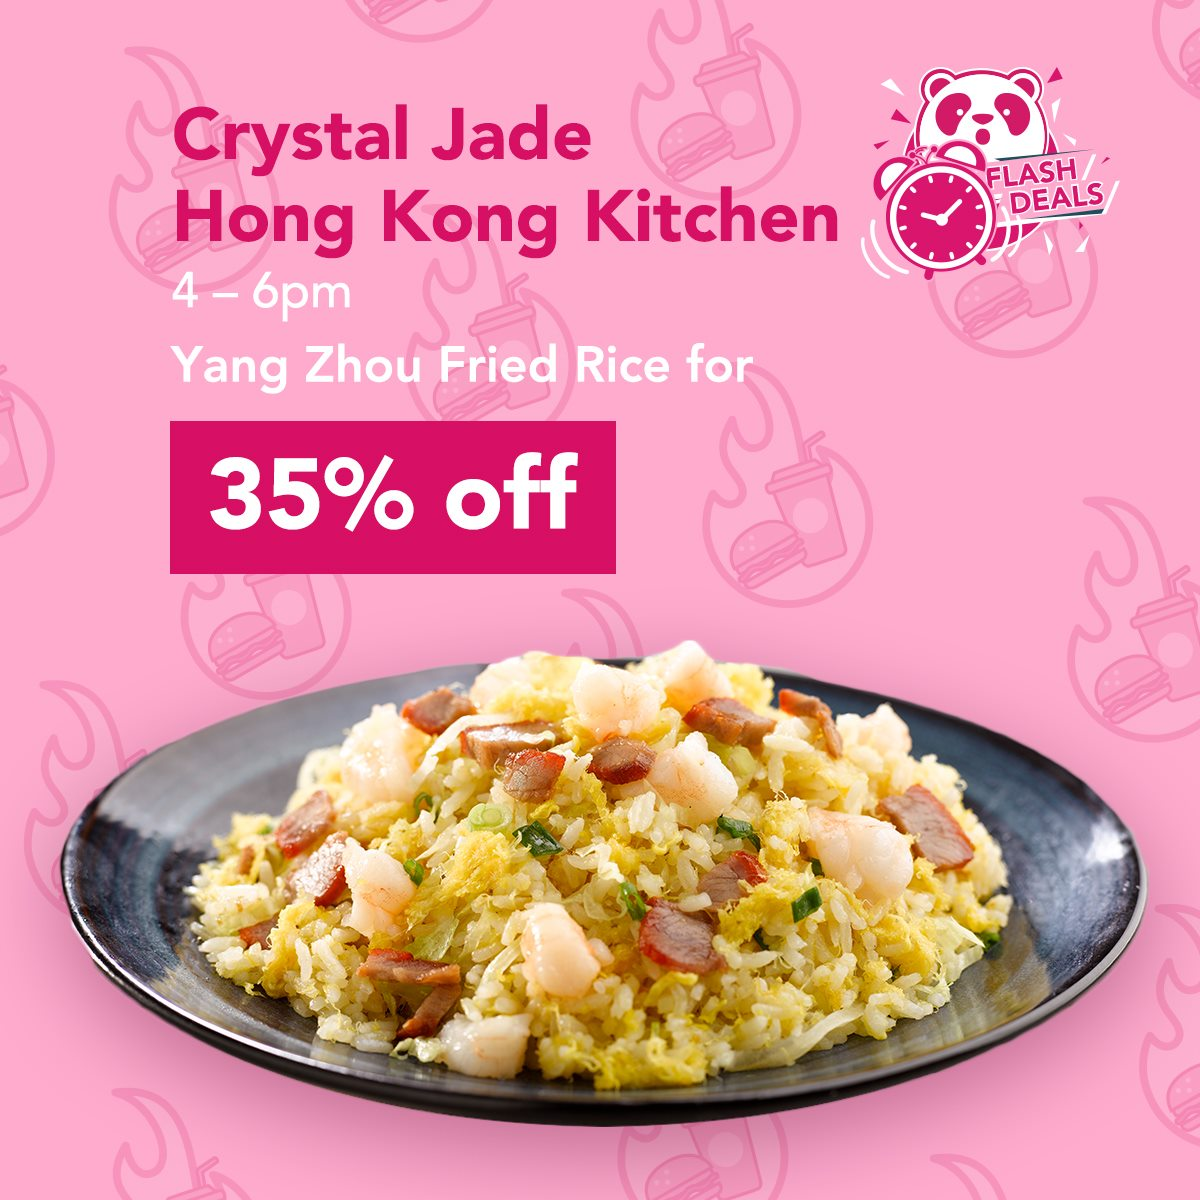 foodpanda Singapore Flash Sale Mondays Up to 50% Off Promotion 14 Oct 2019 | Why Not Deals 2 & Promotions